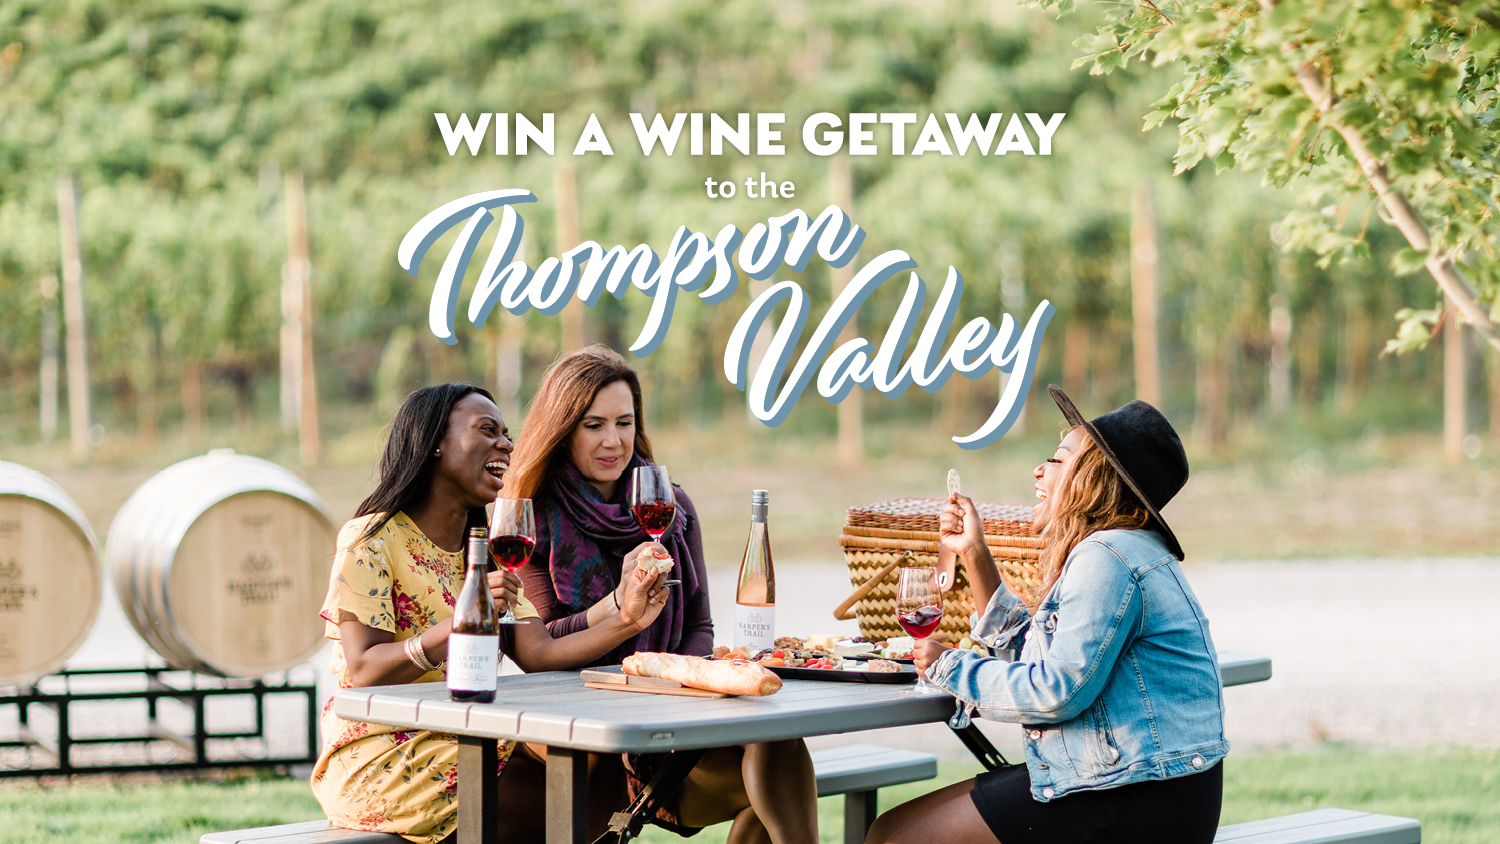 Contest: Win a Wine Getaway to the Thompson Valley